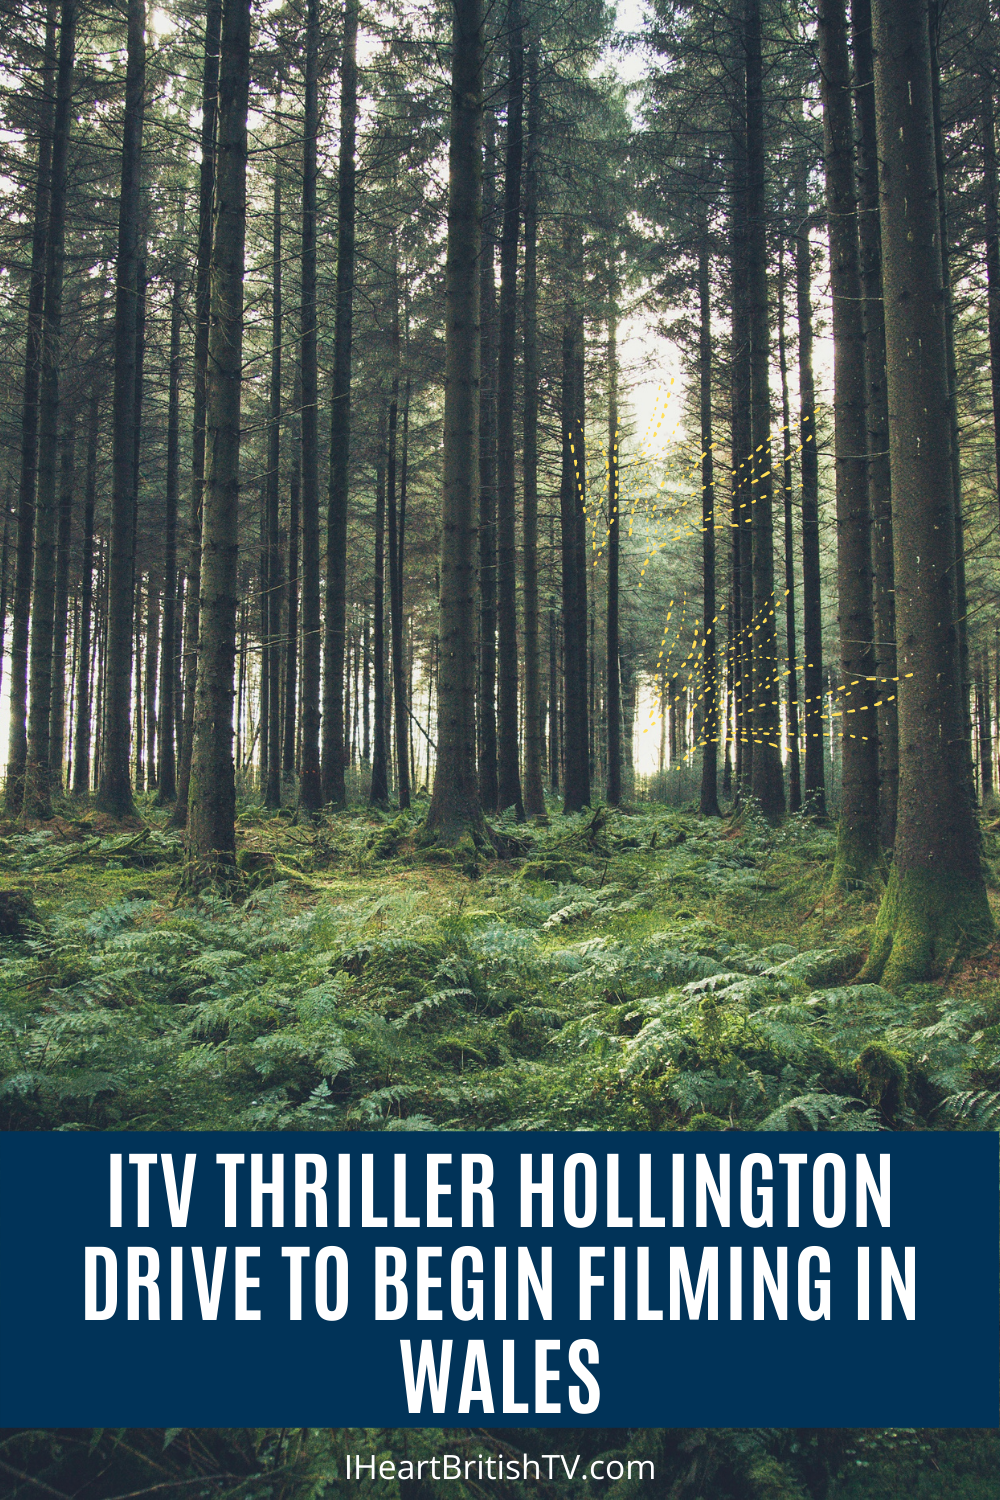 ITV Thriller Hollington Drive to Begin Filming in Wales 4